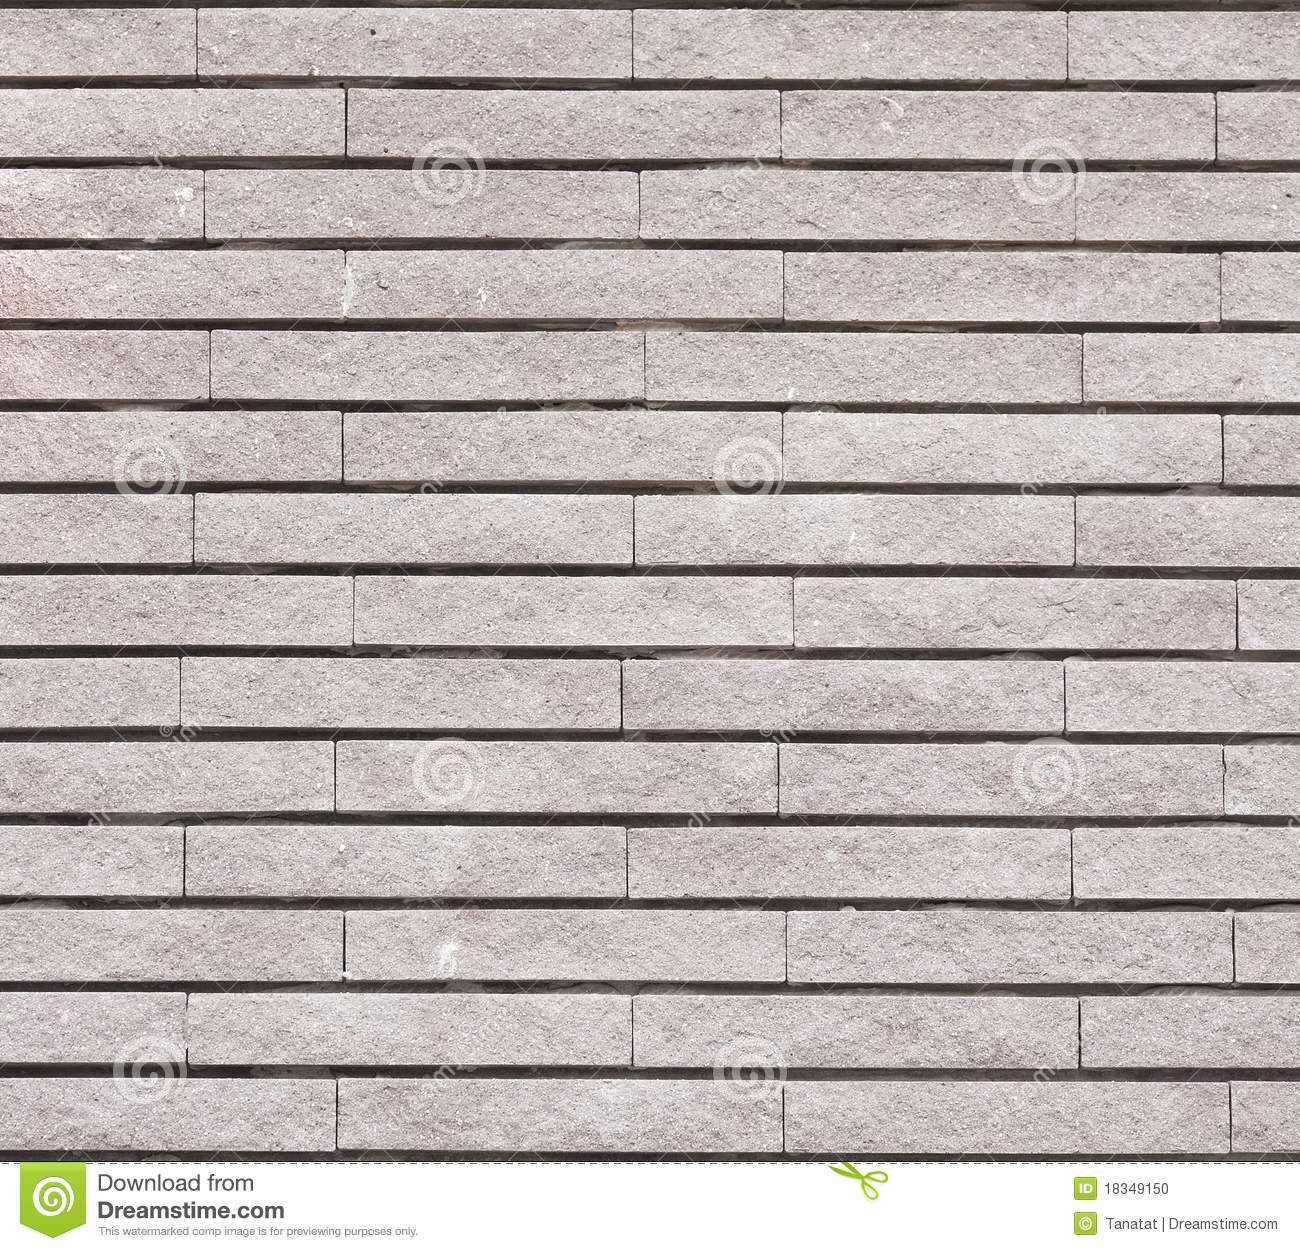 modern brick wall texture. stock photo - image: 68964833